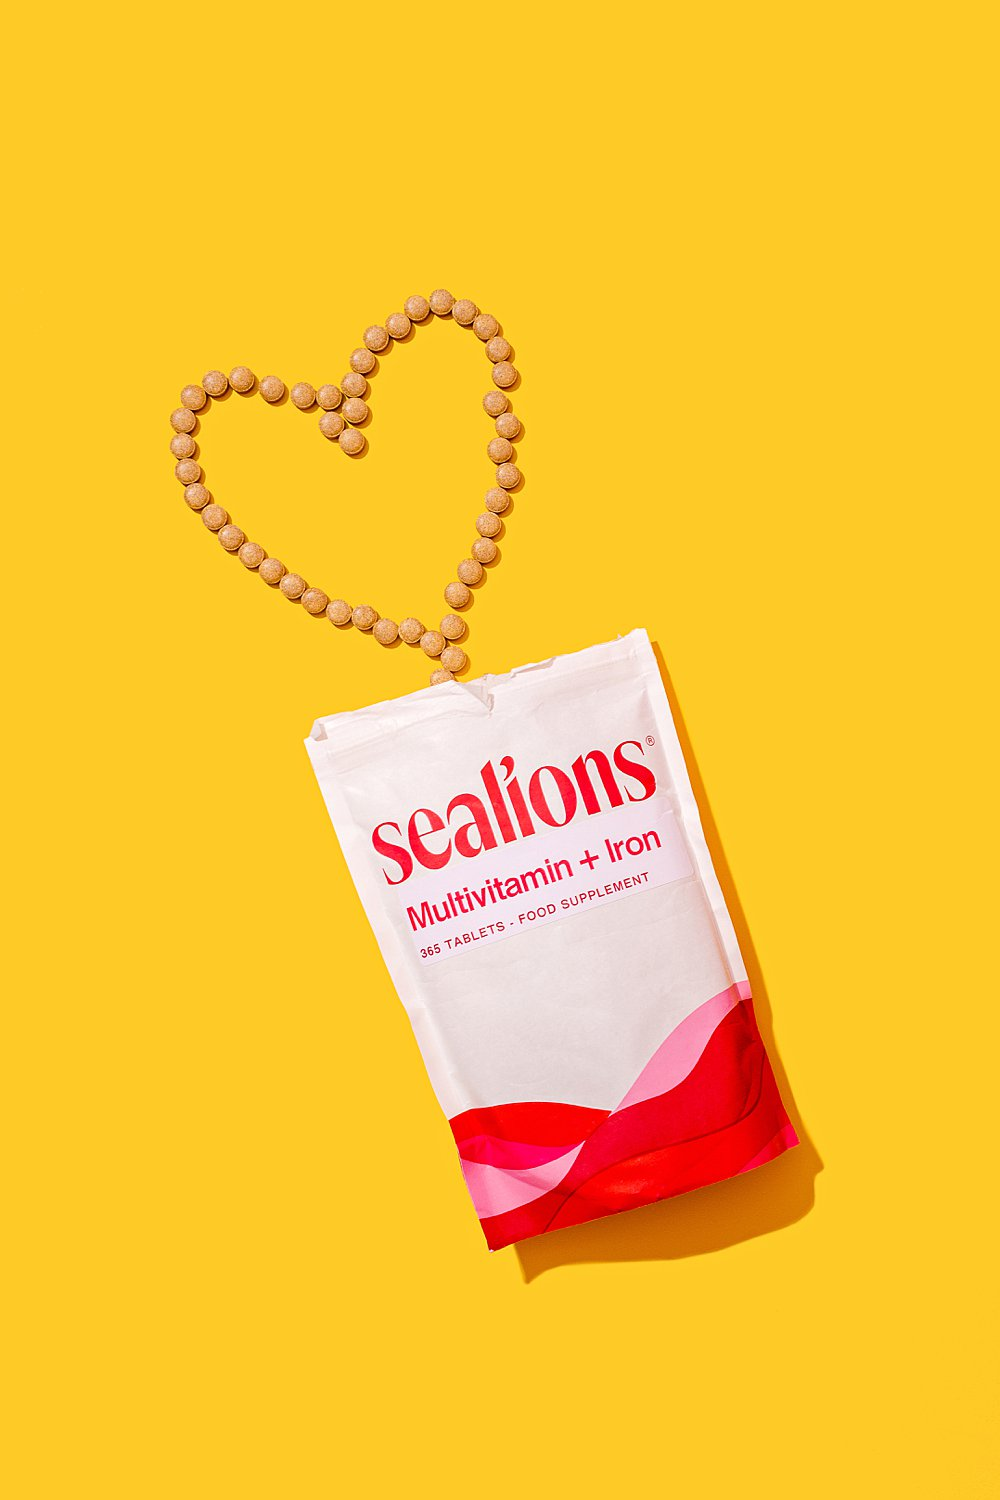 Colourful content creation for the launch of Sealions vitamin brand. Styled health product stills photography by Marianne Taylor.